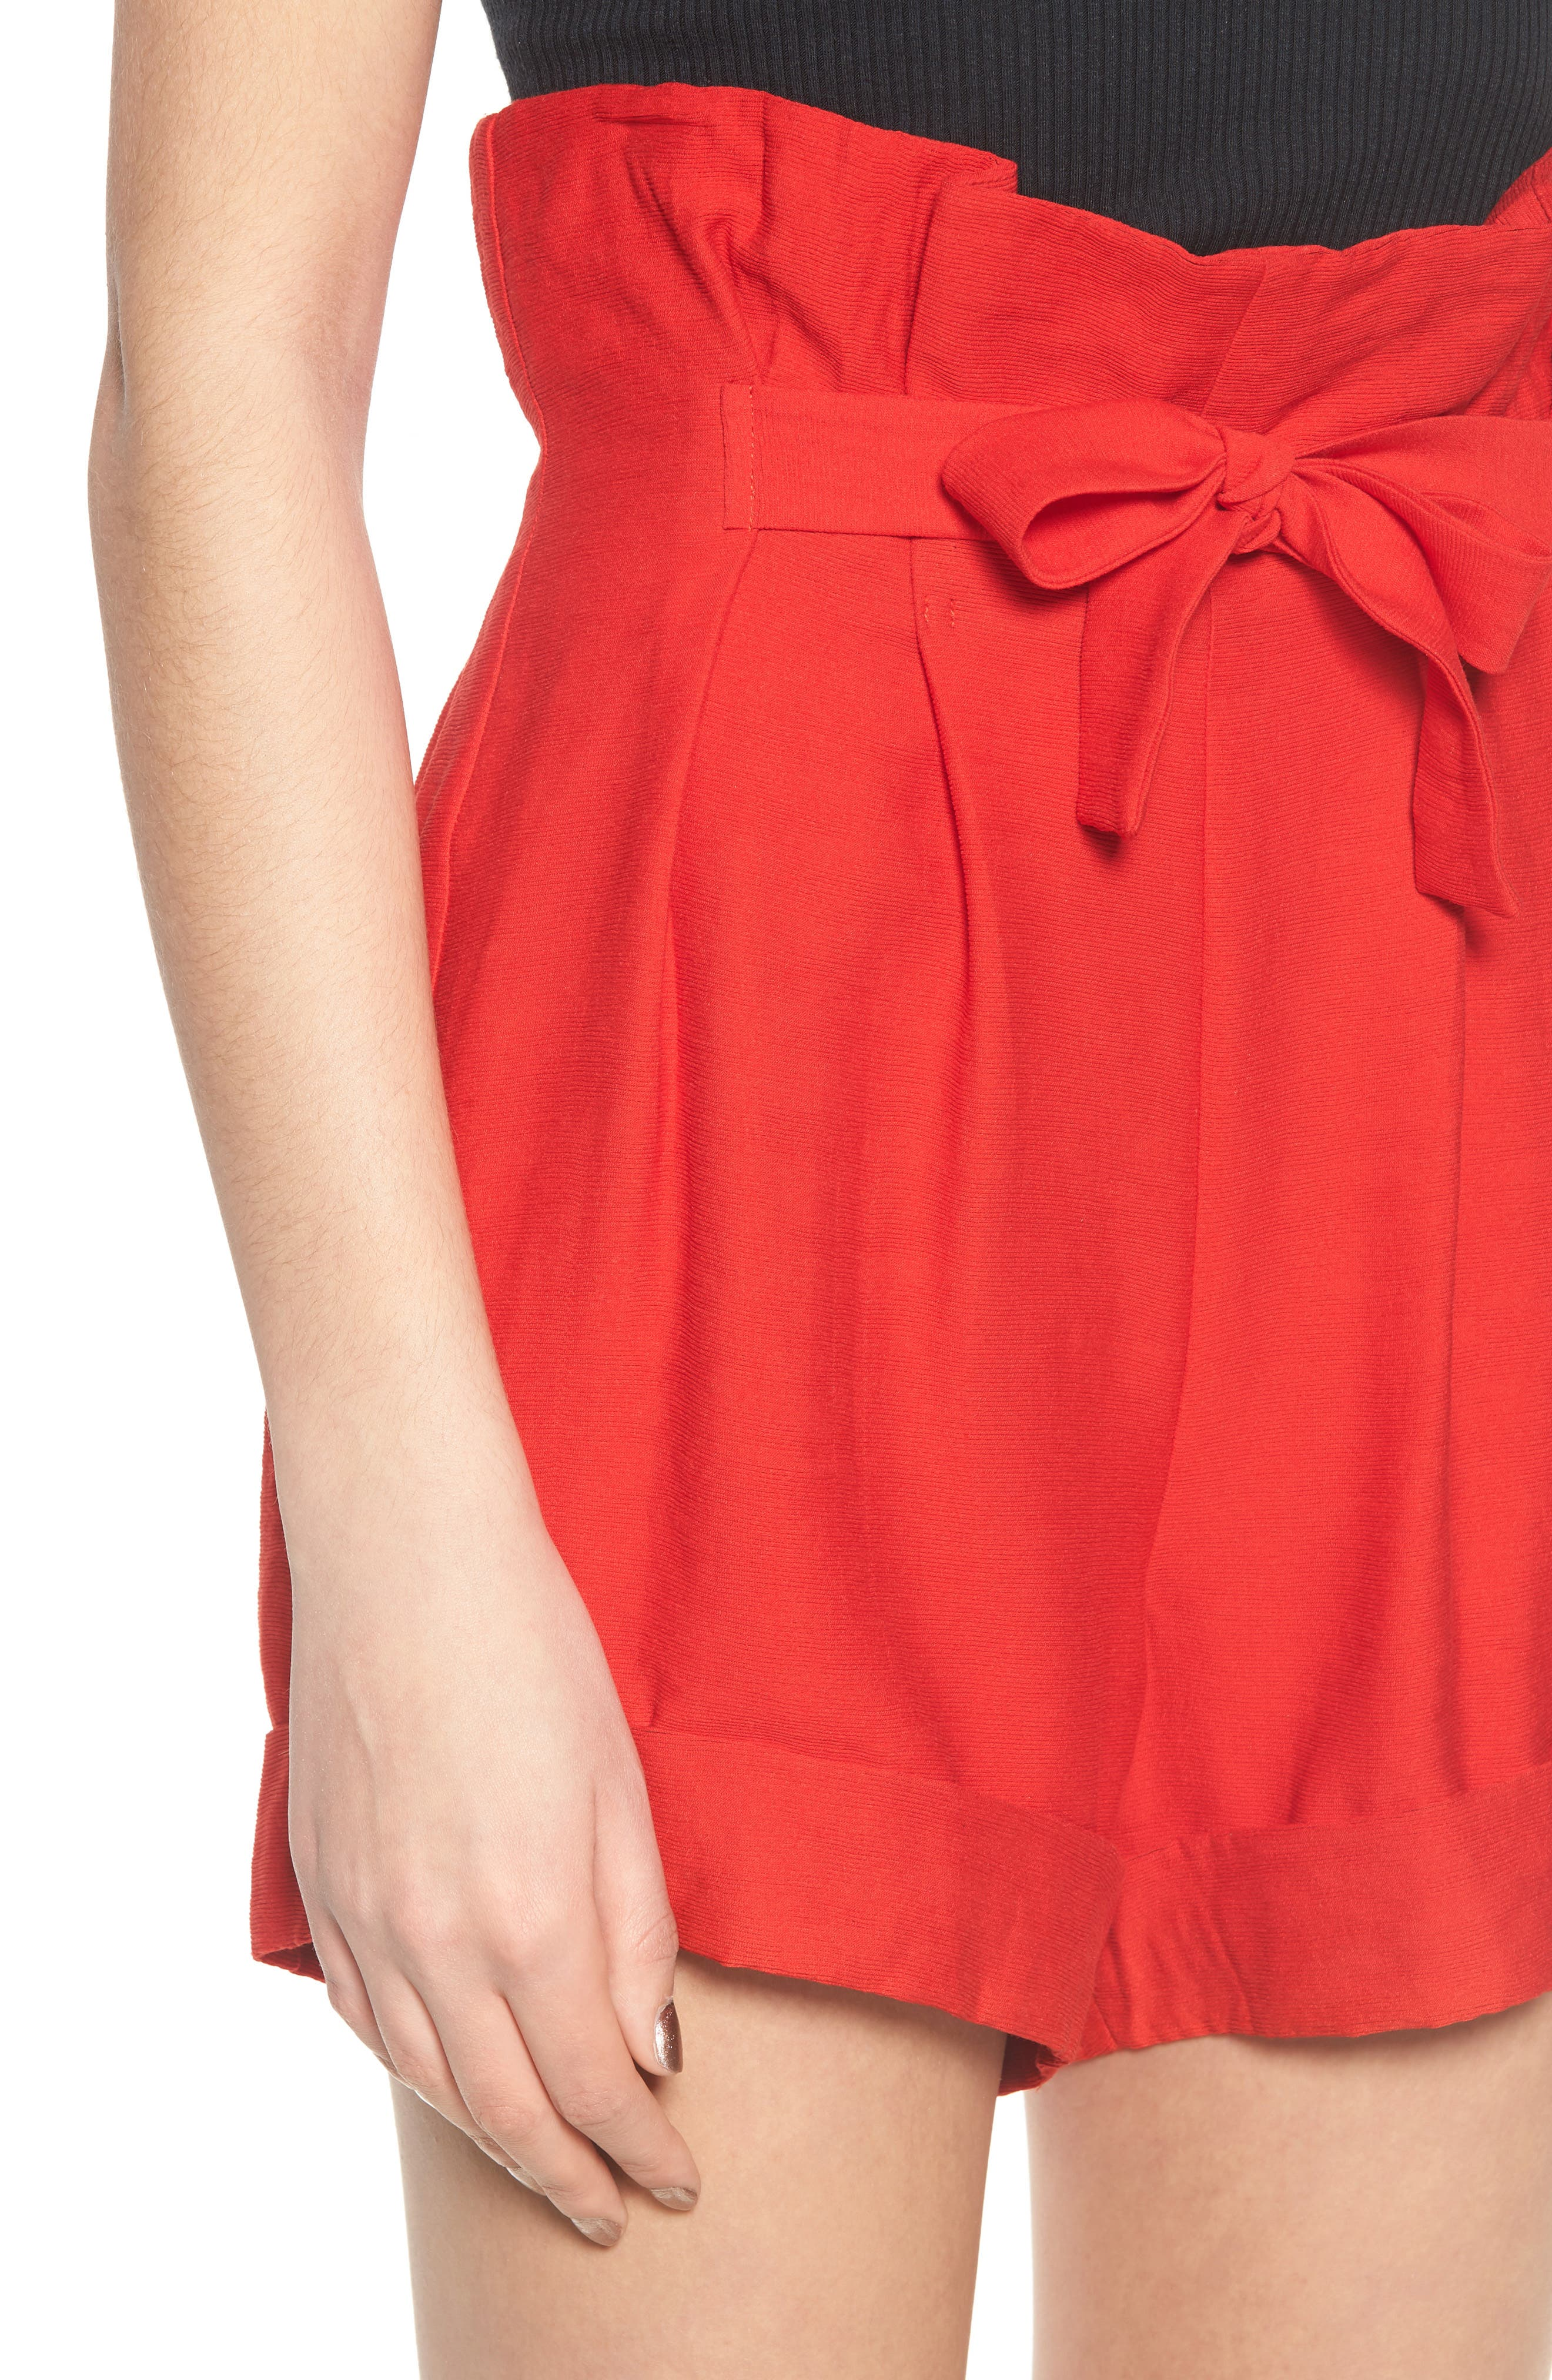 High Waist Short with Tie Detail,                             Alternate thumbnail 5, color,                             Red